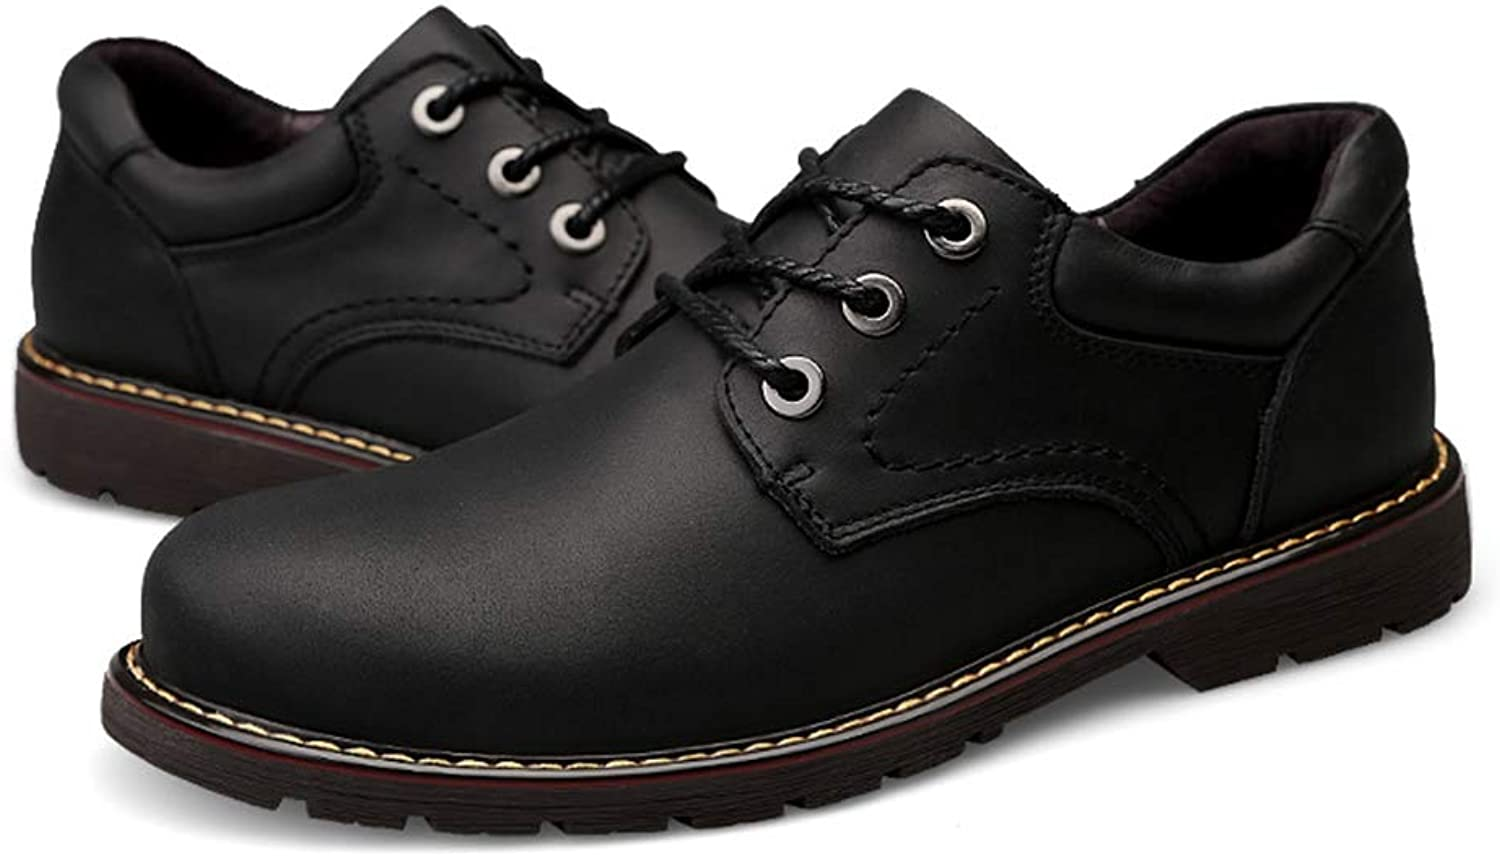 Dig dog bone Men's Ankle Boots Casual Simple Classic Low-top Outdoor Outsole Martin Boots